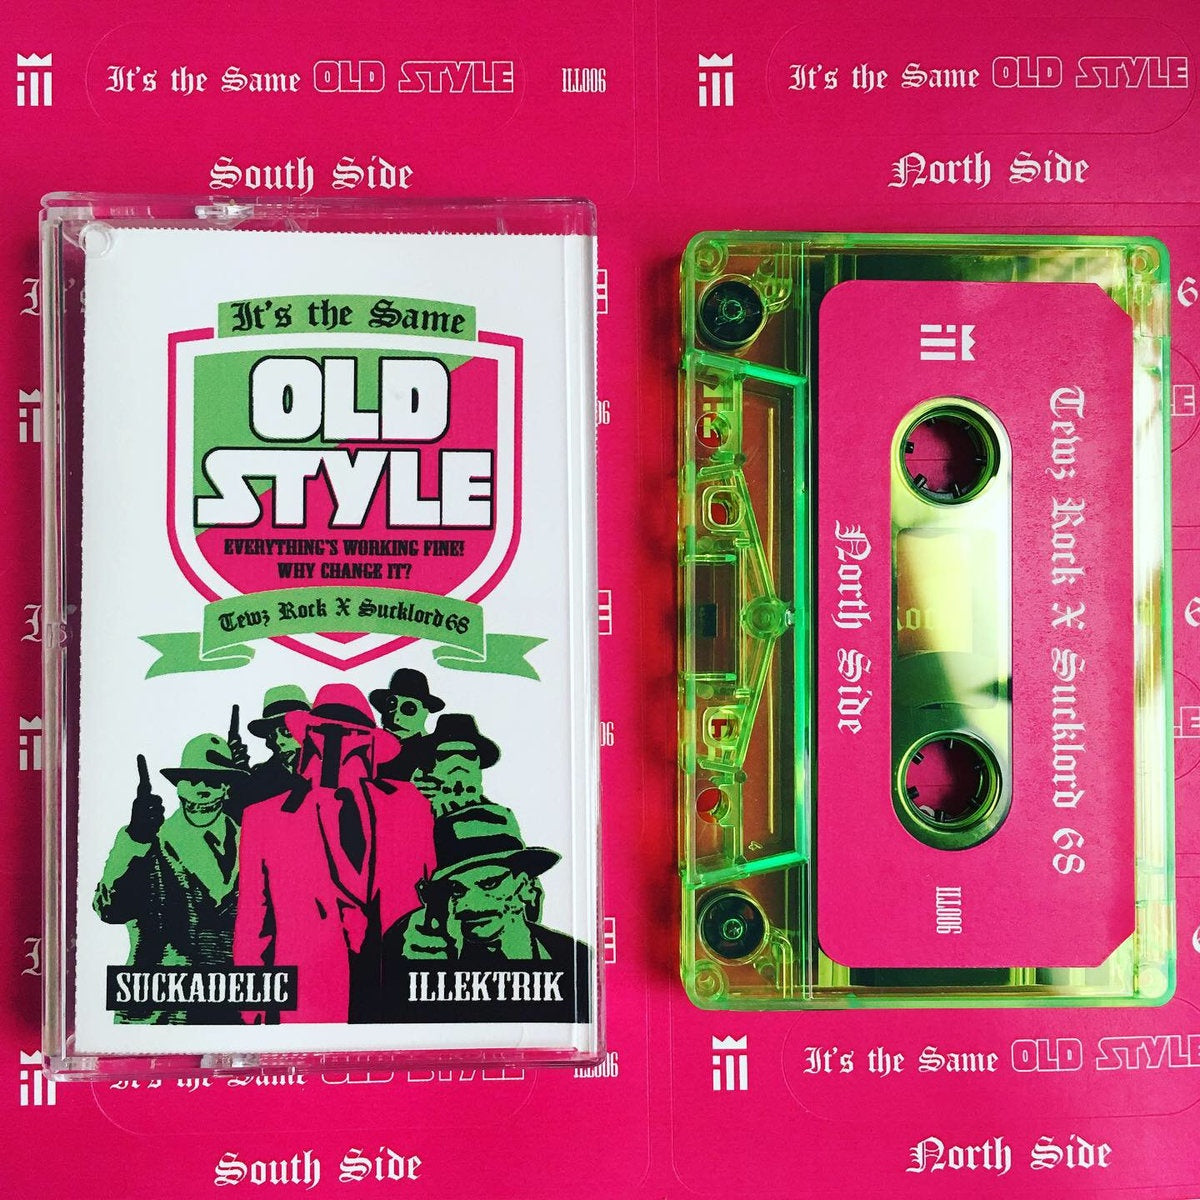 Tewz Rock x Sucklord 68 - Its the Same OLD STYLE - New Cassette 2019 'Chicago Themed Fluorescent Green' Colored Tape - Chicago Beat Tape / Instrumental Hip Hop